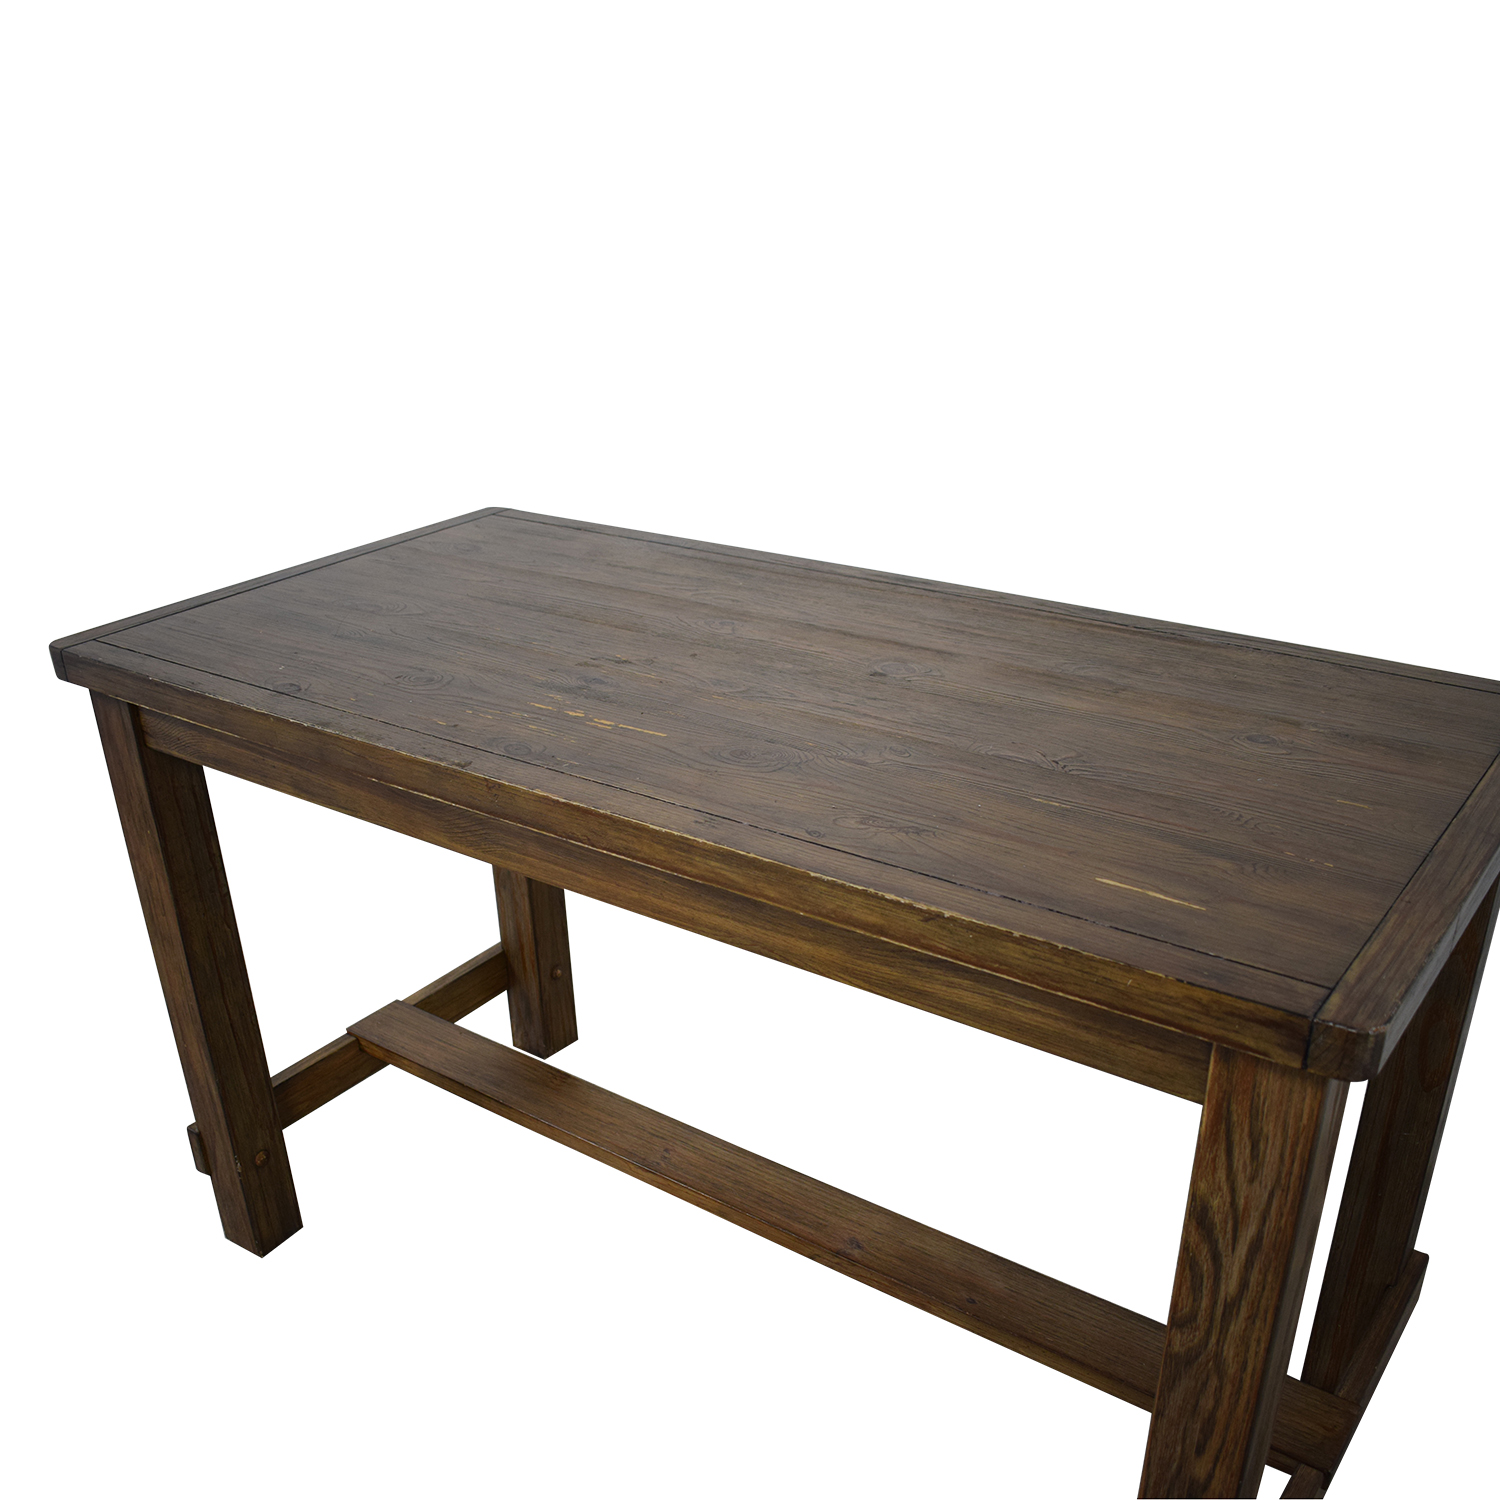 72% OFF - Ashley Furniture Ashley Furniture Wooden Counter Height Kitchen  Table / Tables